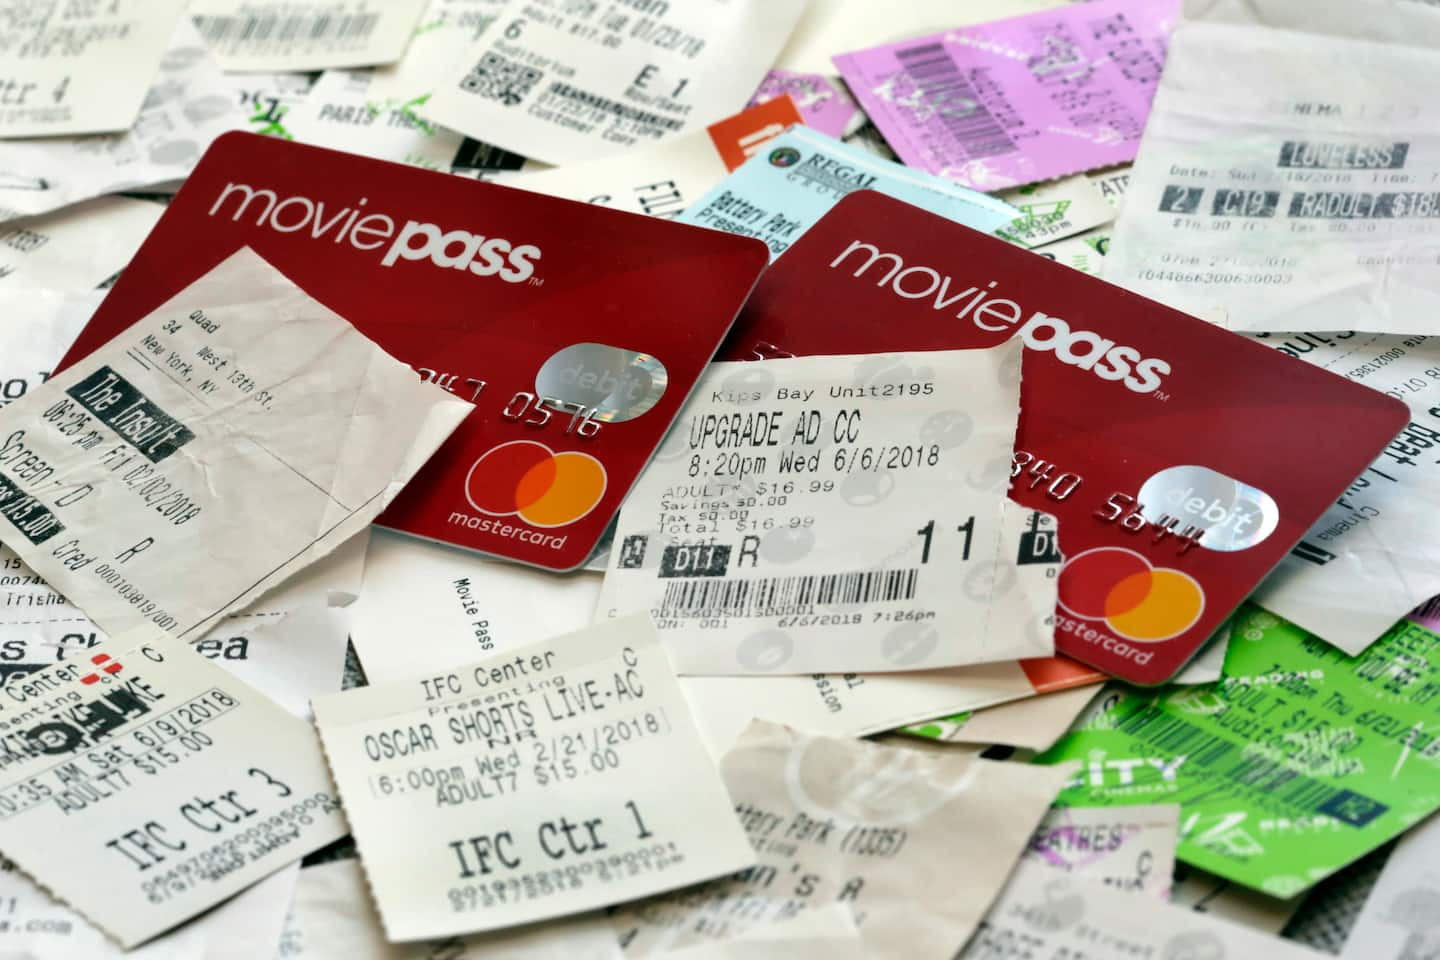 MoviePass's latest excuse for being problematic is that it's literally run by dogs